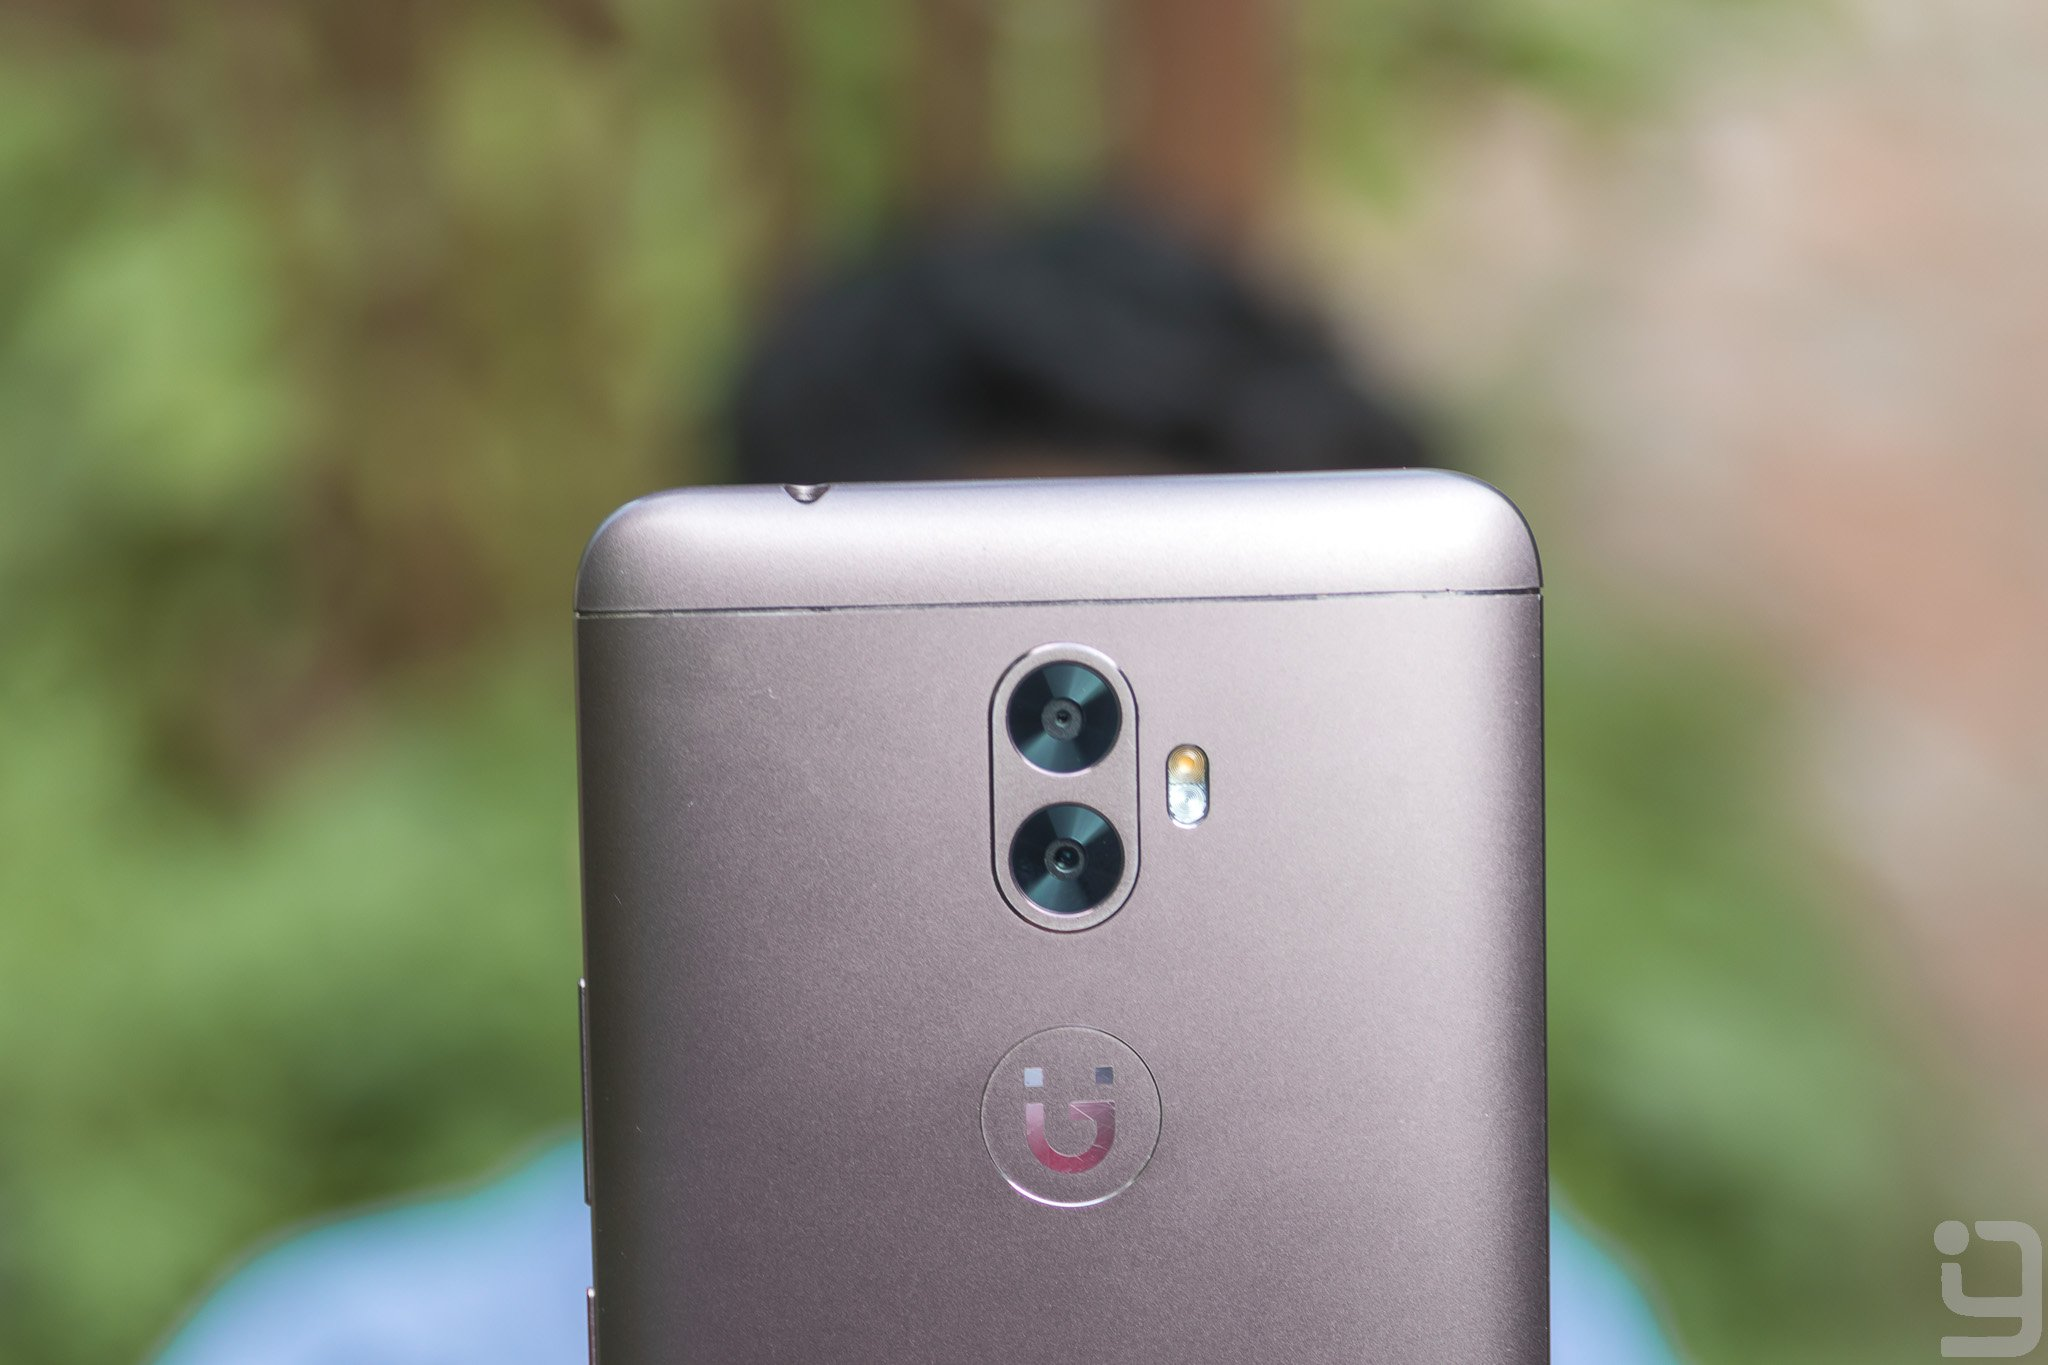 Gionee a1 plus rear camera review